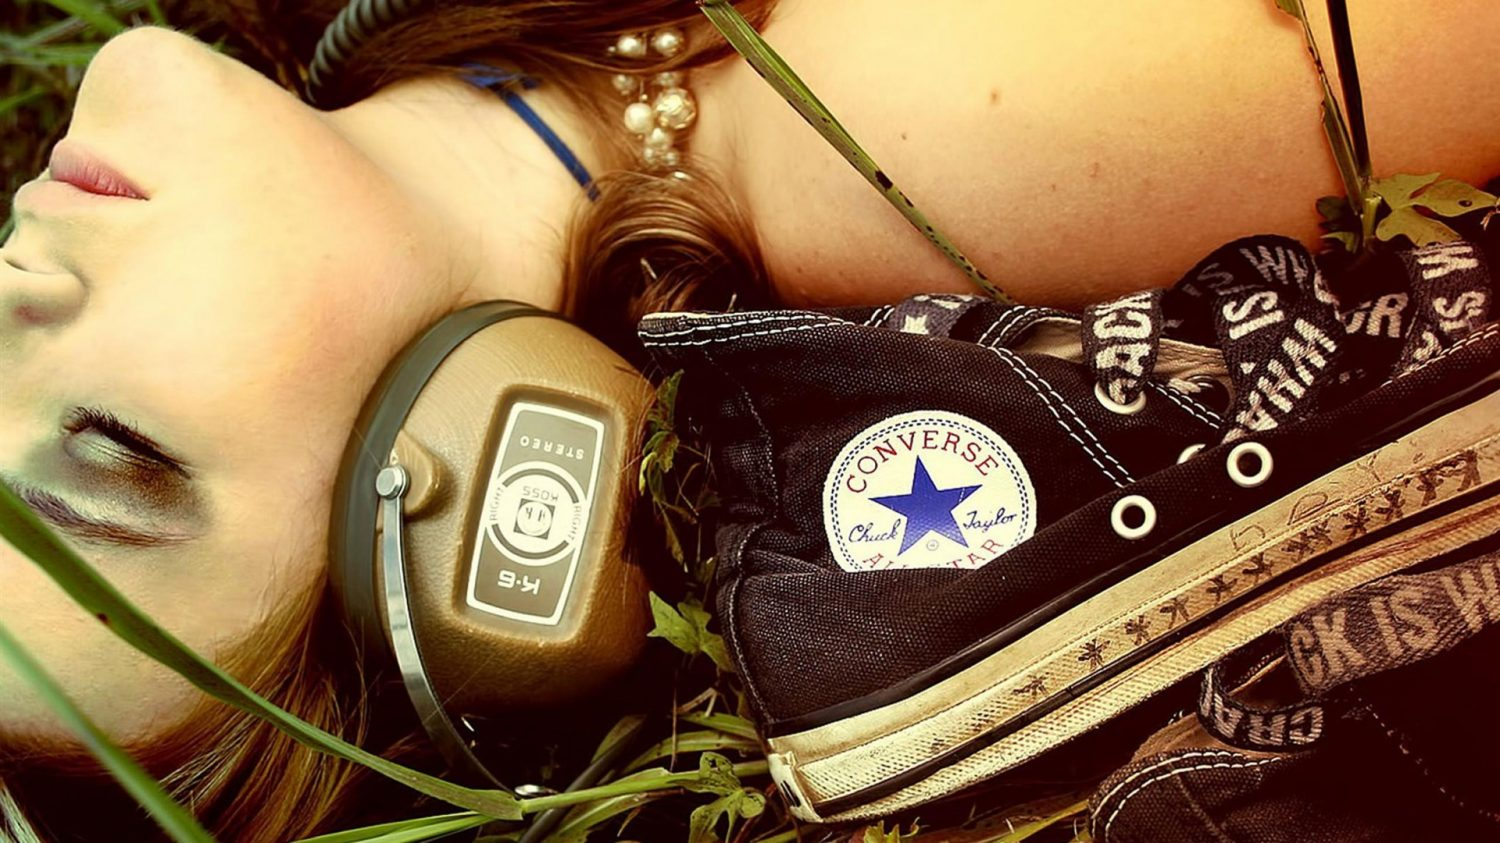 cropped-converse_music-Global_brand_advertising_wallpaper_1920x1080.jpg